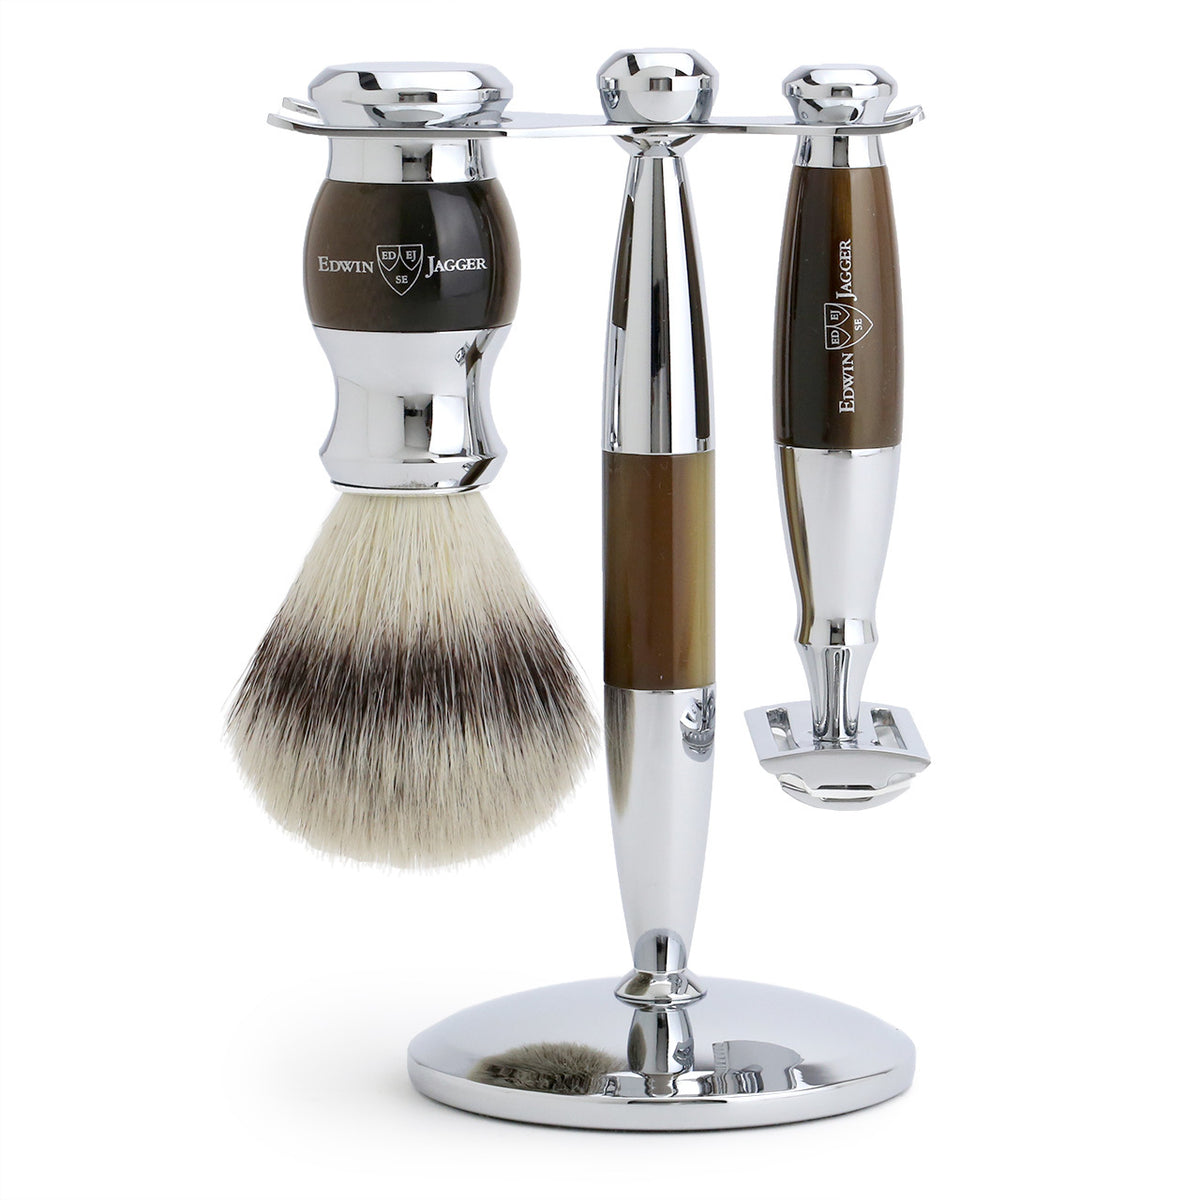 Edwin Jagger 3 Piece Chrome Plated Shaving Set with Synthetic Silver Tip Brush - Imitation Horn